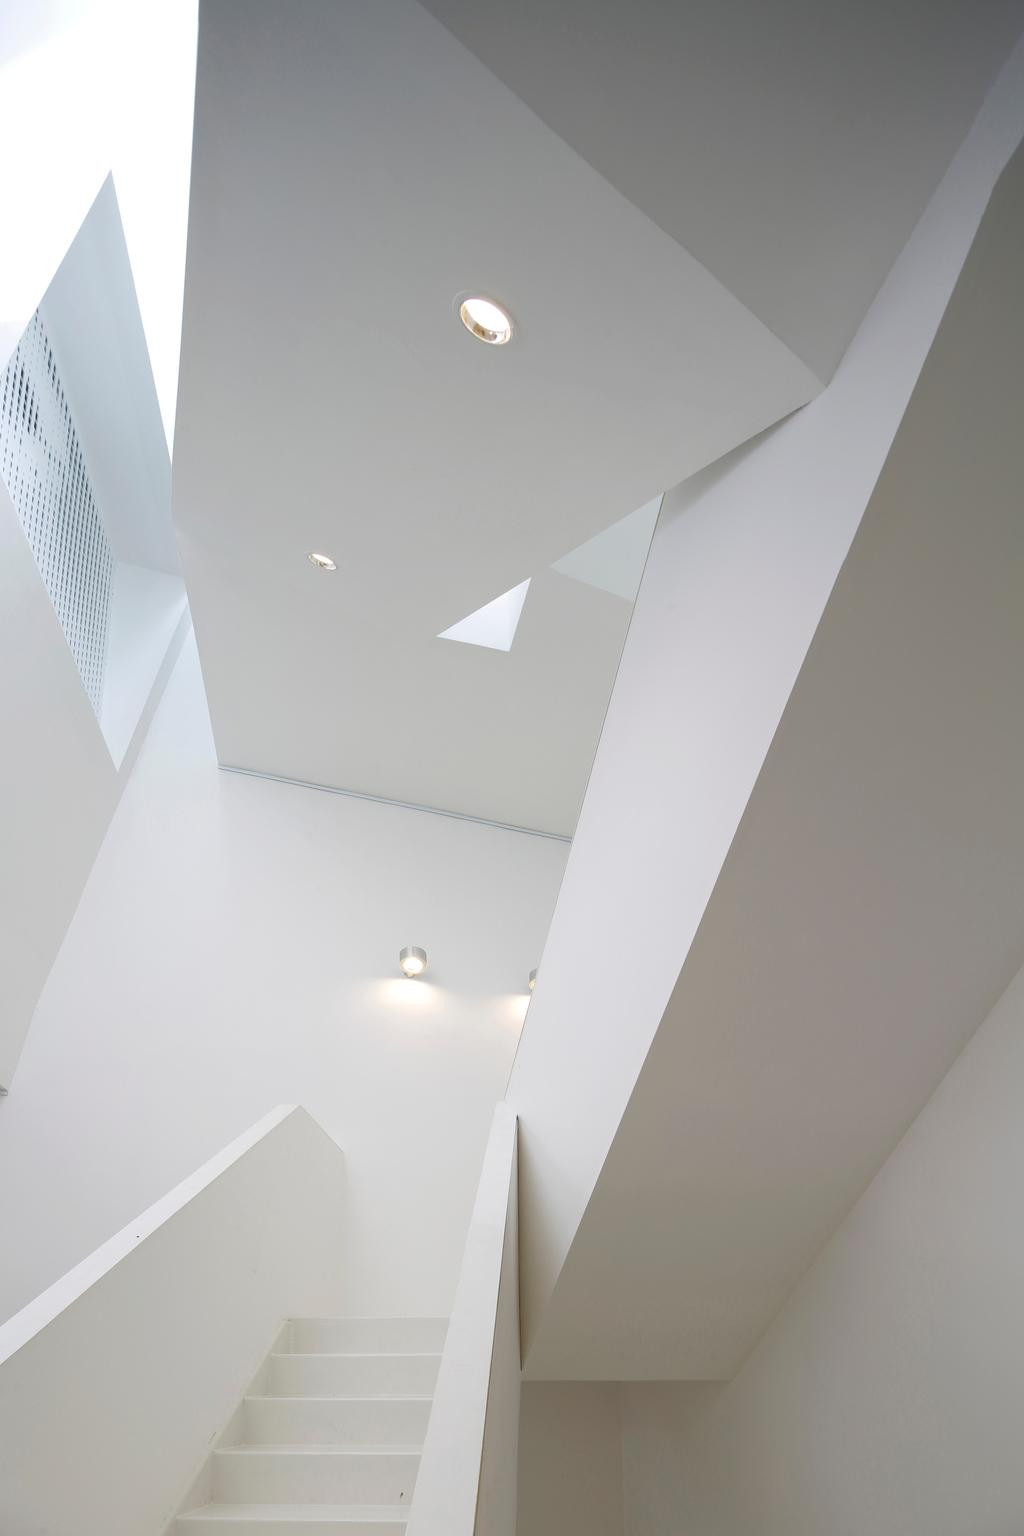 Gallery House, Commercial, Architect, Lekker Architects, Modern, Recessed Lighting, Recessed Lights, White Stairstay, White Steps, Wall Lamp